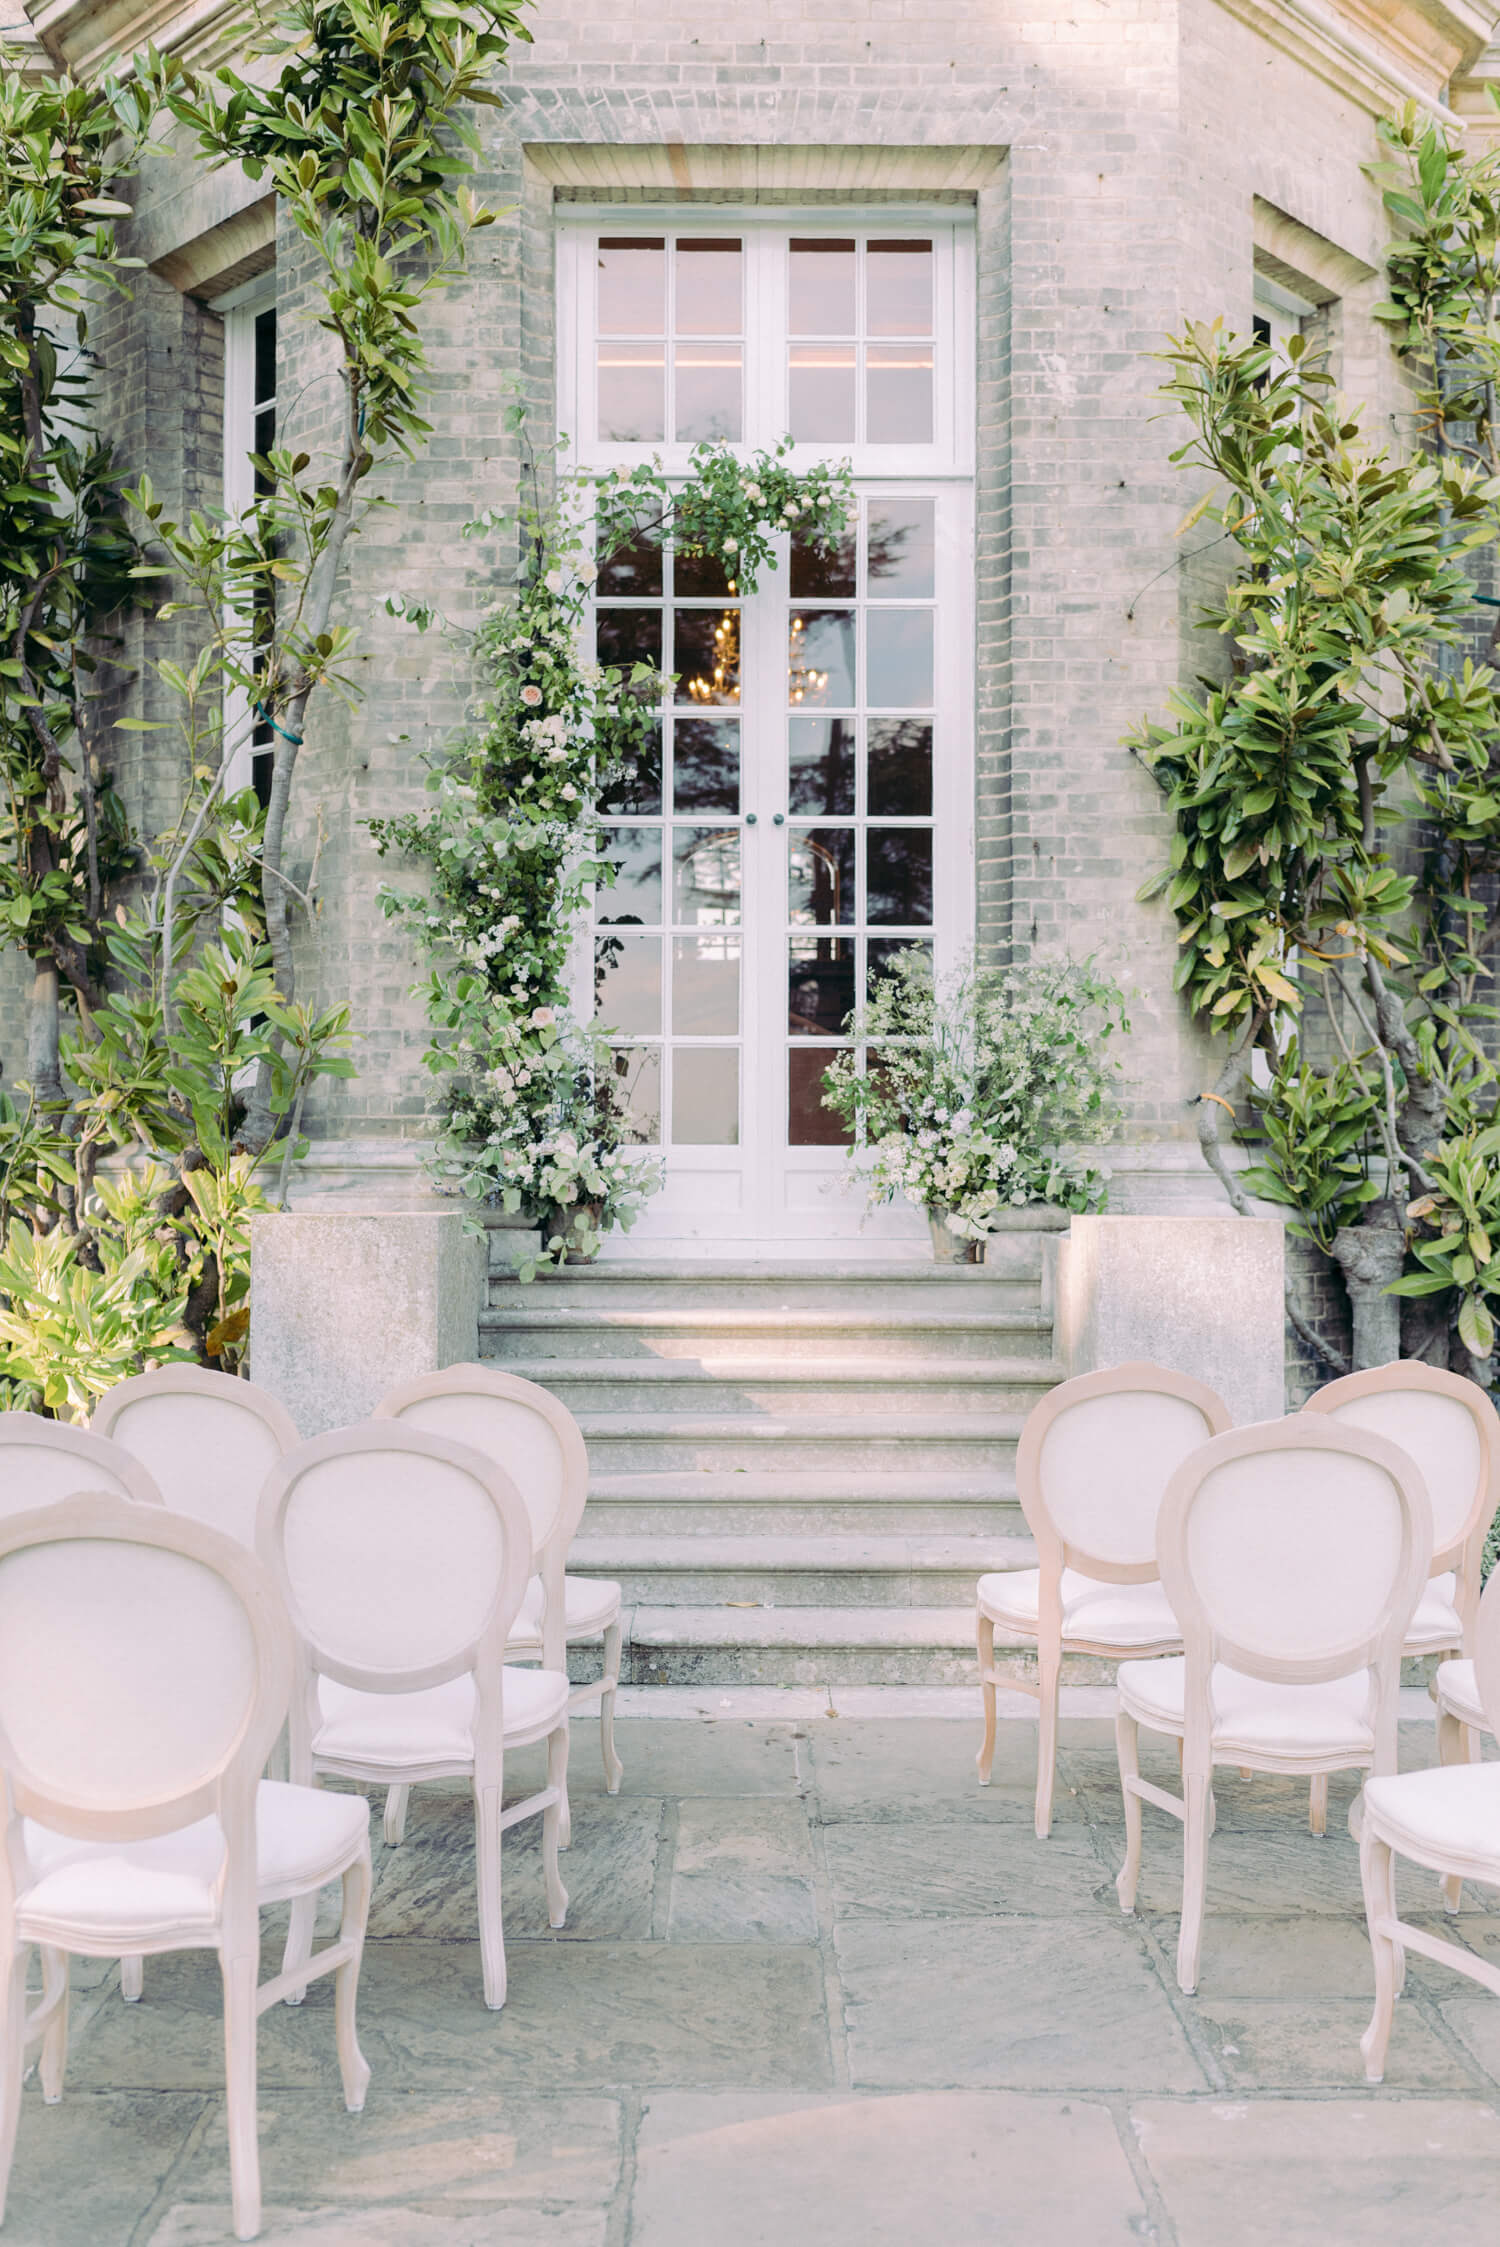 fine art garden wedding venue less than an hour from London. In photo: wedding ceremony setup outside a Georgian house with natural wood antique French style chair and ivory cushions, minimalist floral installation by UK based florist Lucy the Flower Hunter. Photography by Cristina Ilao www.cristinailao.com